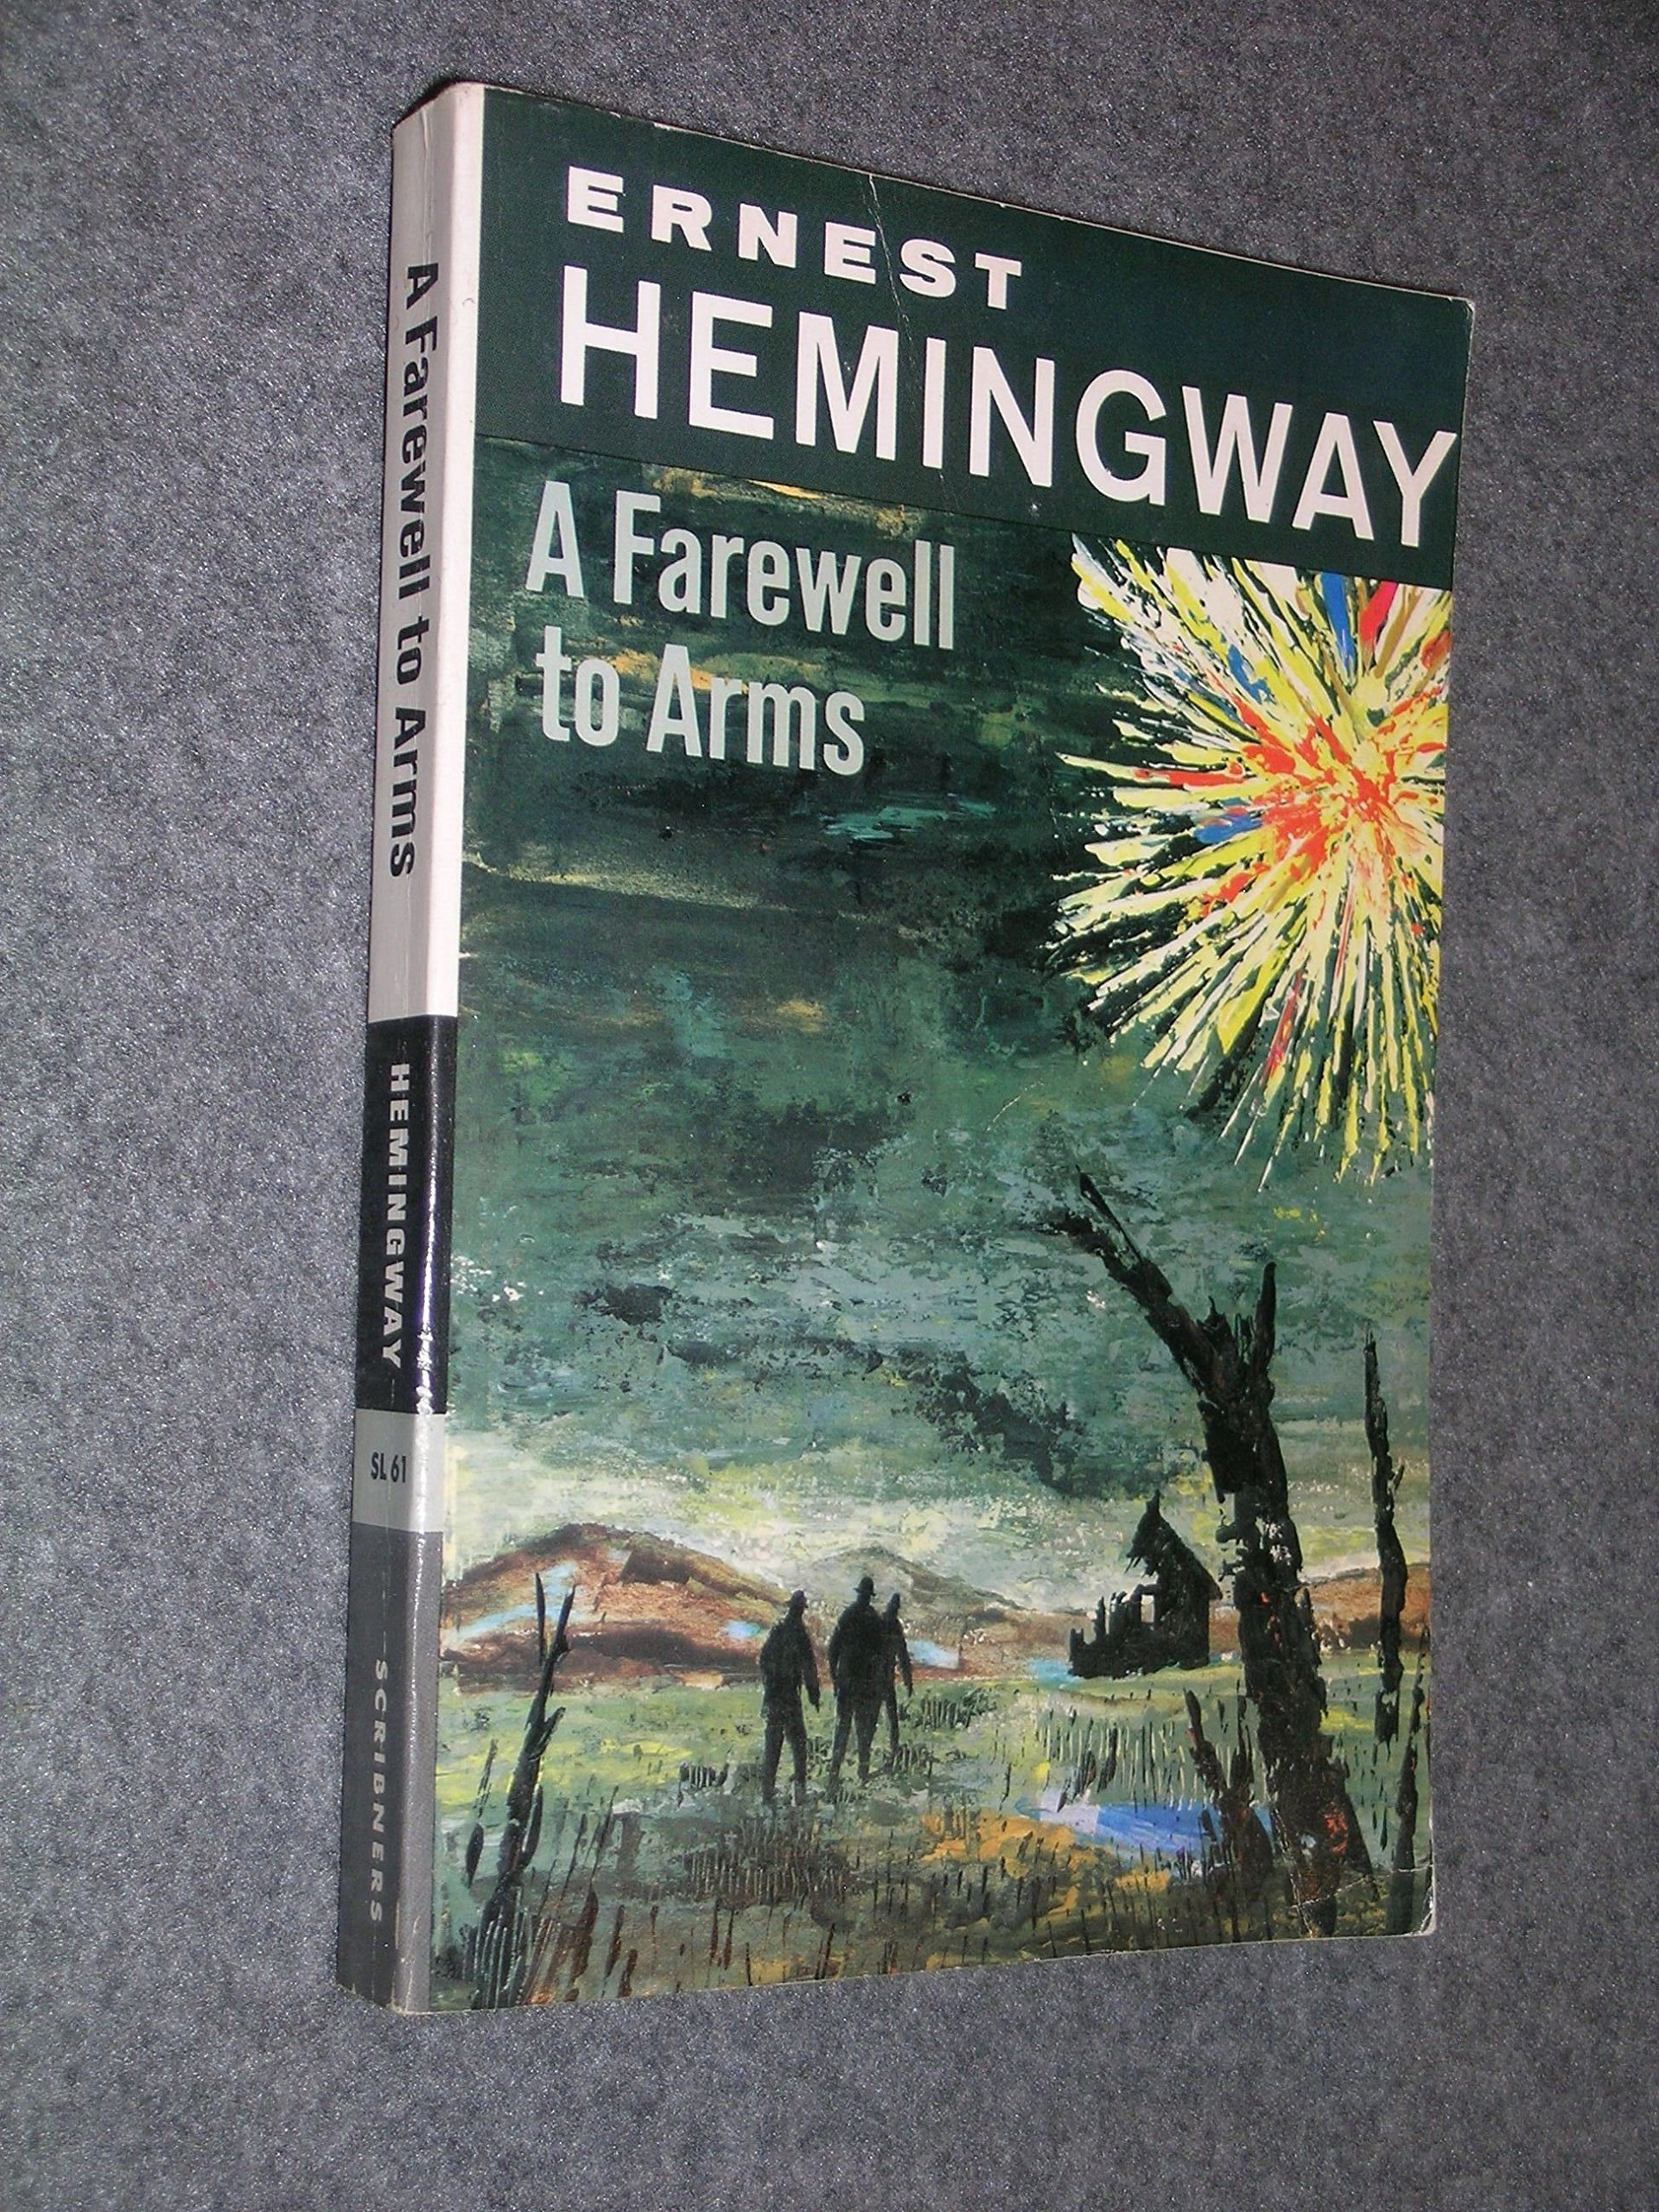 in his novel a farewell to arms ernest hemingway